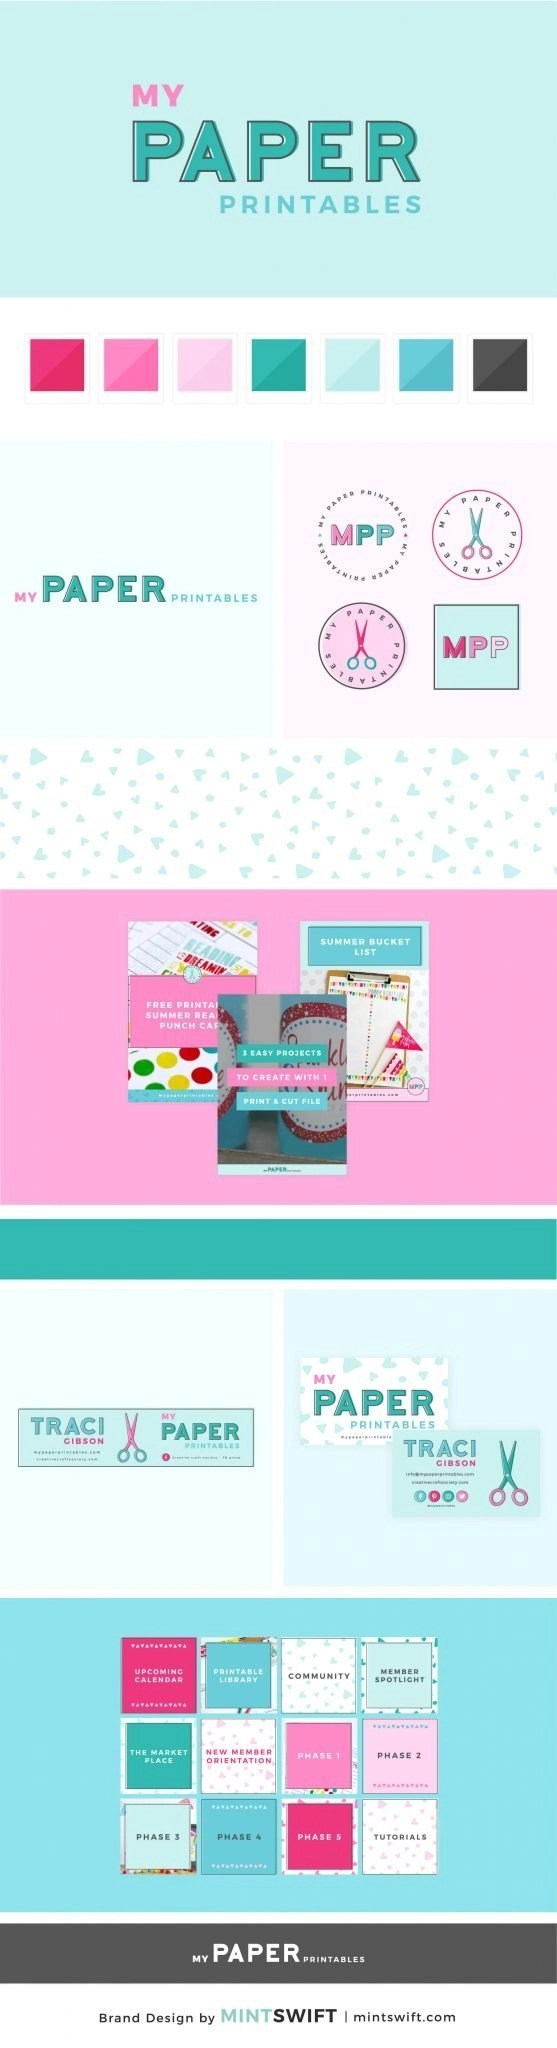 My Paper Printables - Brand Design Package - MintSwift